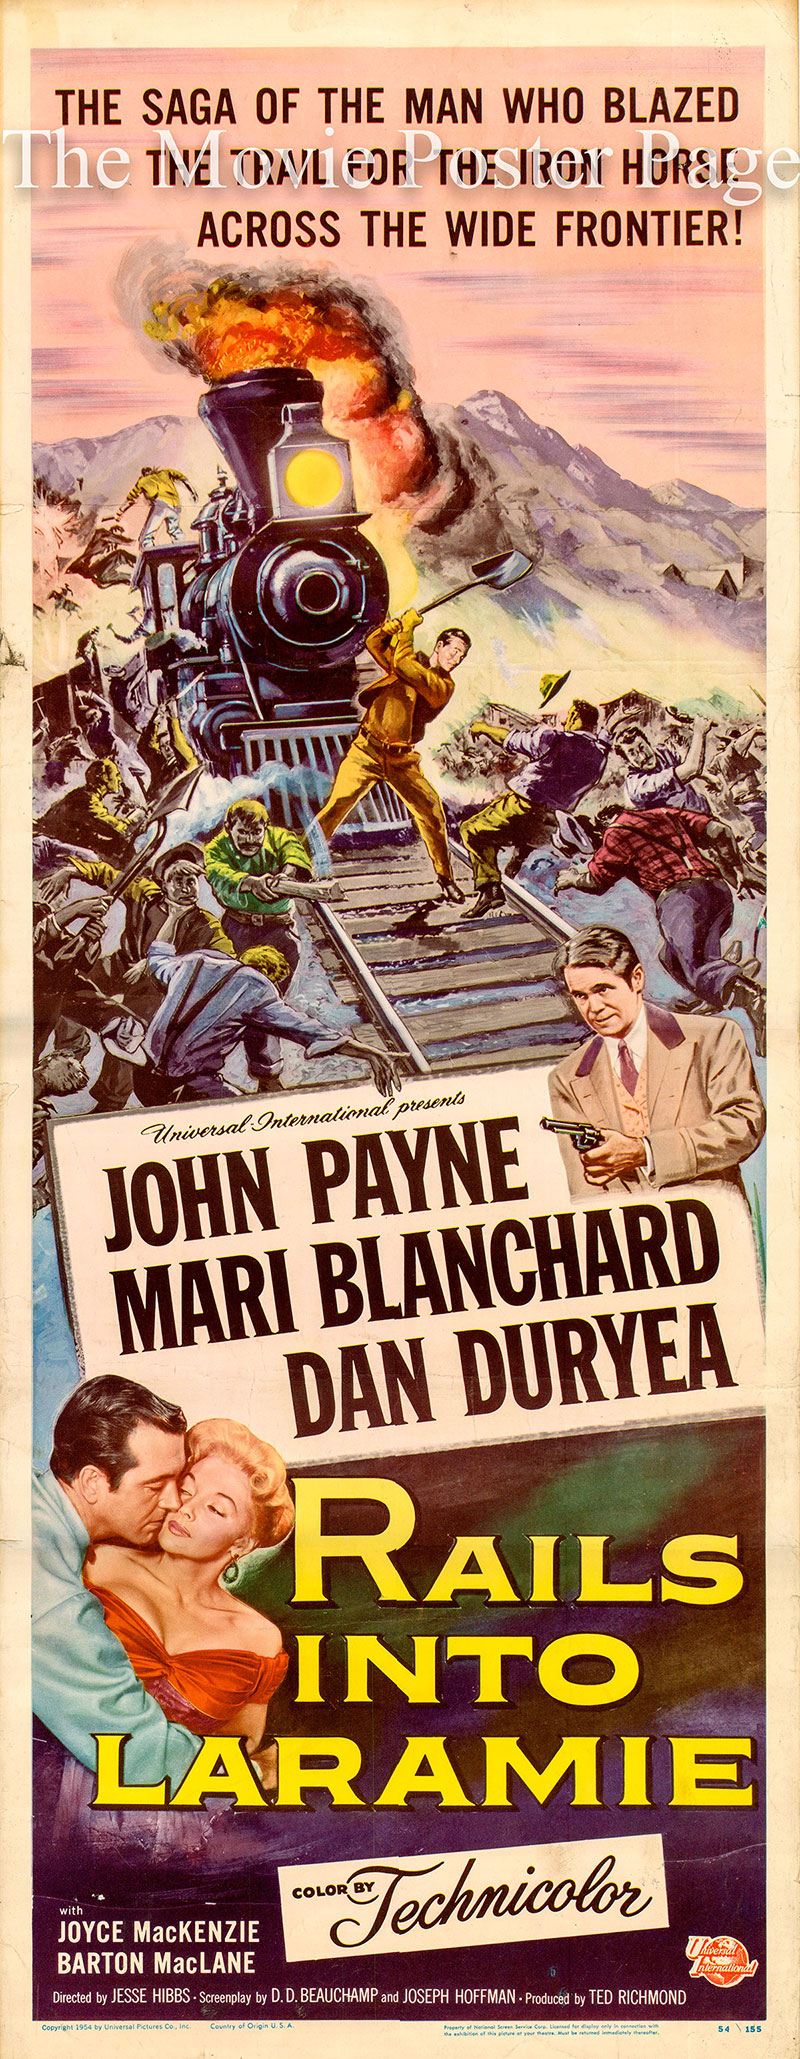 Pictured is a US insert poster for the 1954 Jesse Hibbs film Rails into Laramie starring John Payne.